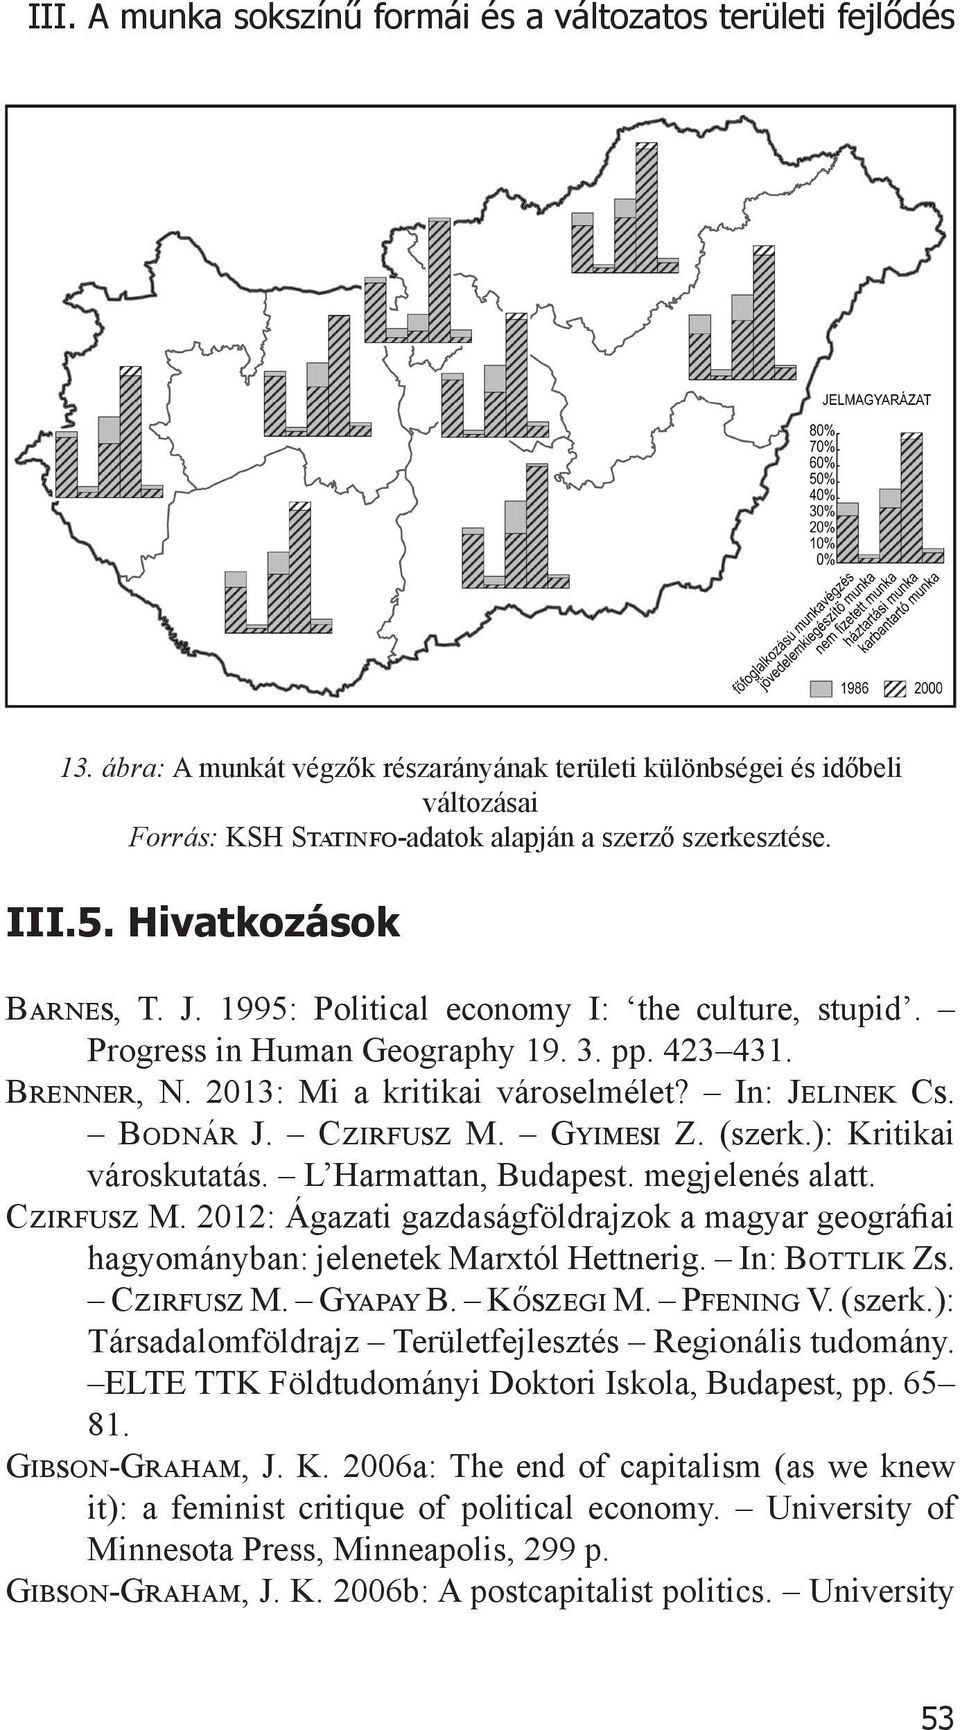 1995: Political economy I: the culture, stupid. Progress in Human Geography 19. 3. pp. 423 431. Brenner, N. 2013: Mi a kritikai városelmélet? In: Jelinek Cs. Bodnár J. Czirfusz M. Gyimesi Z. (szerk.